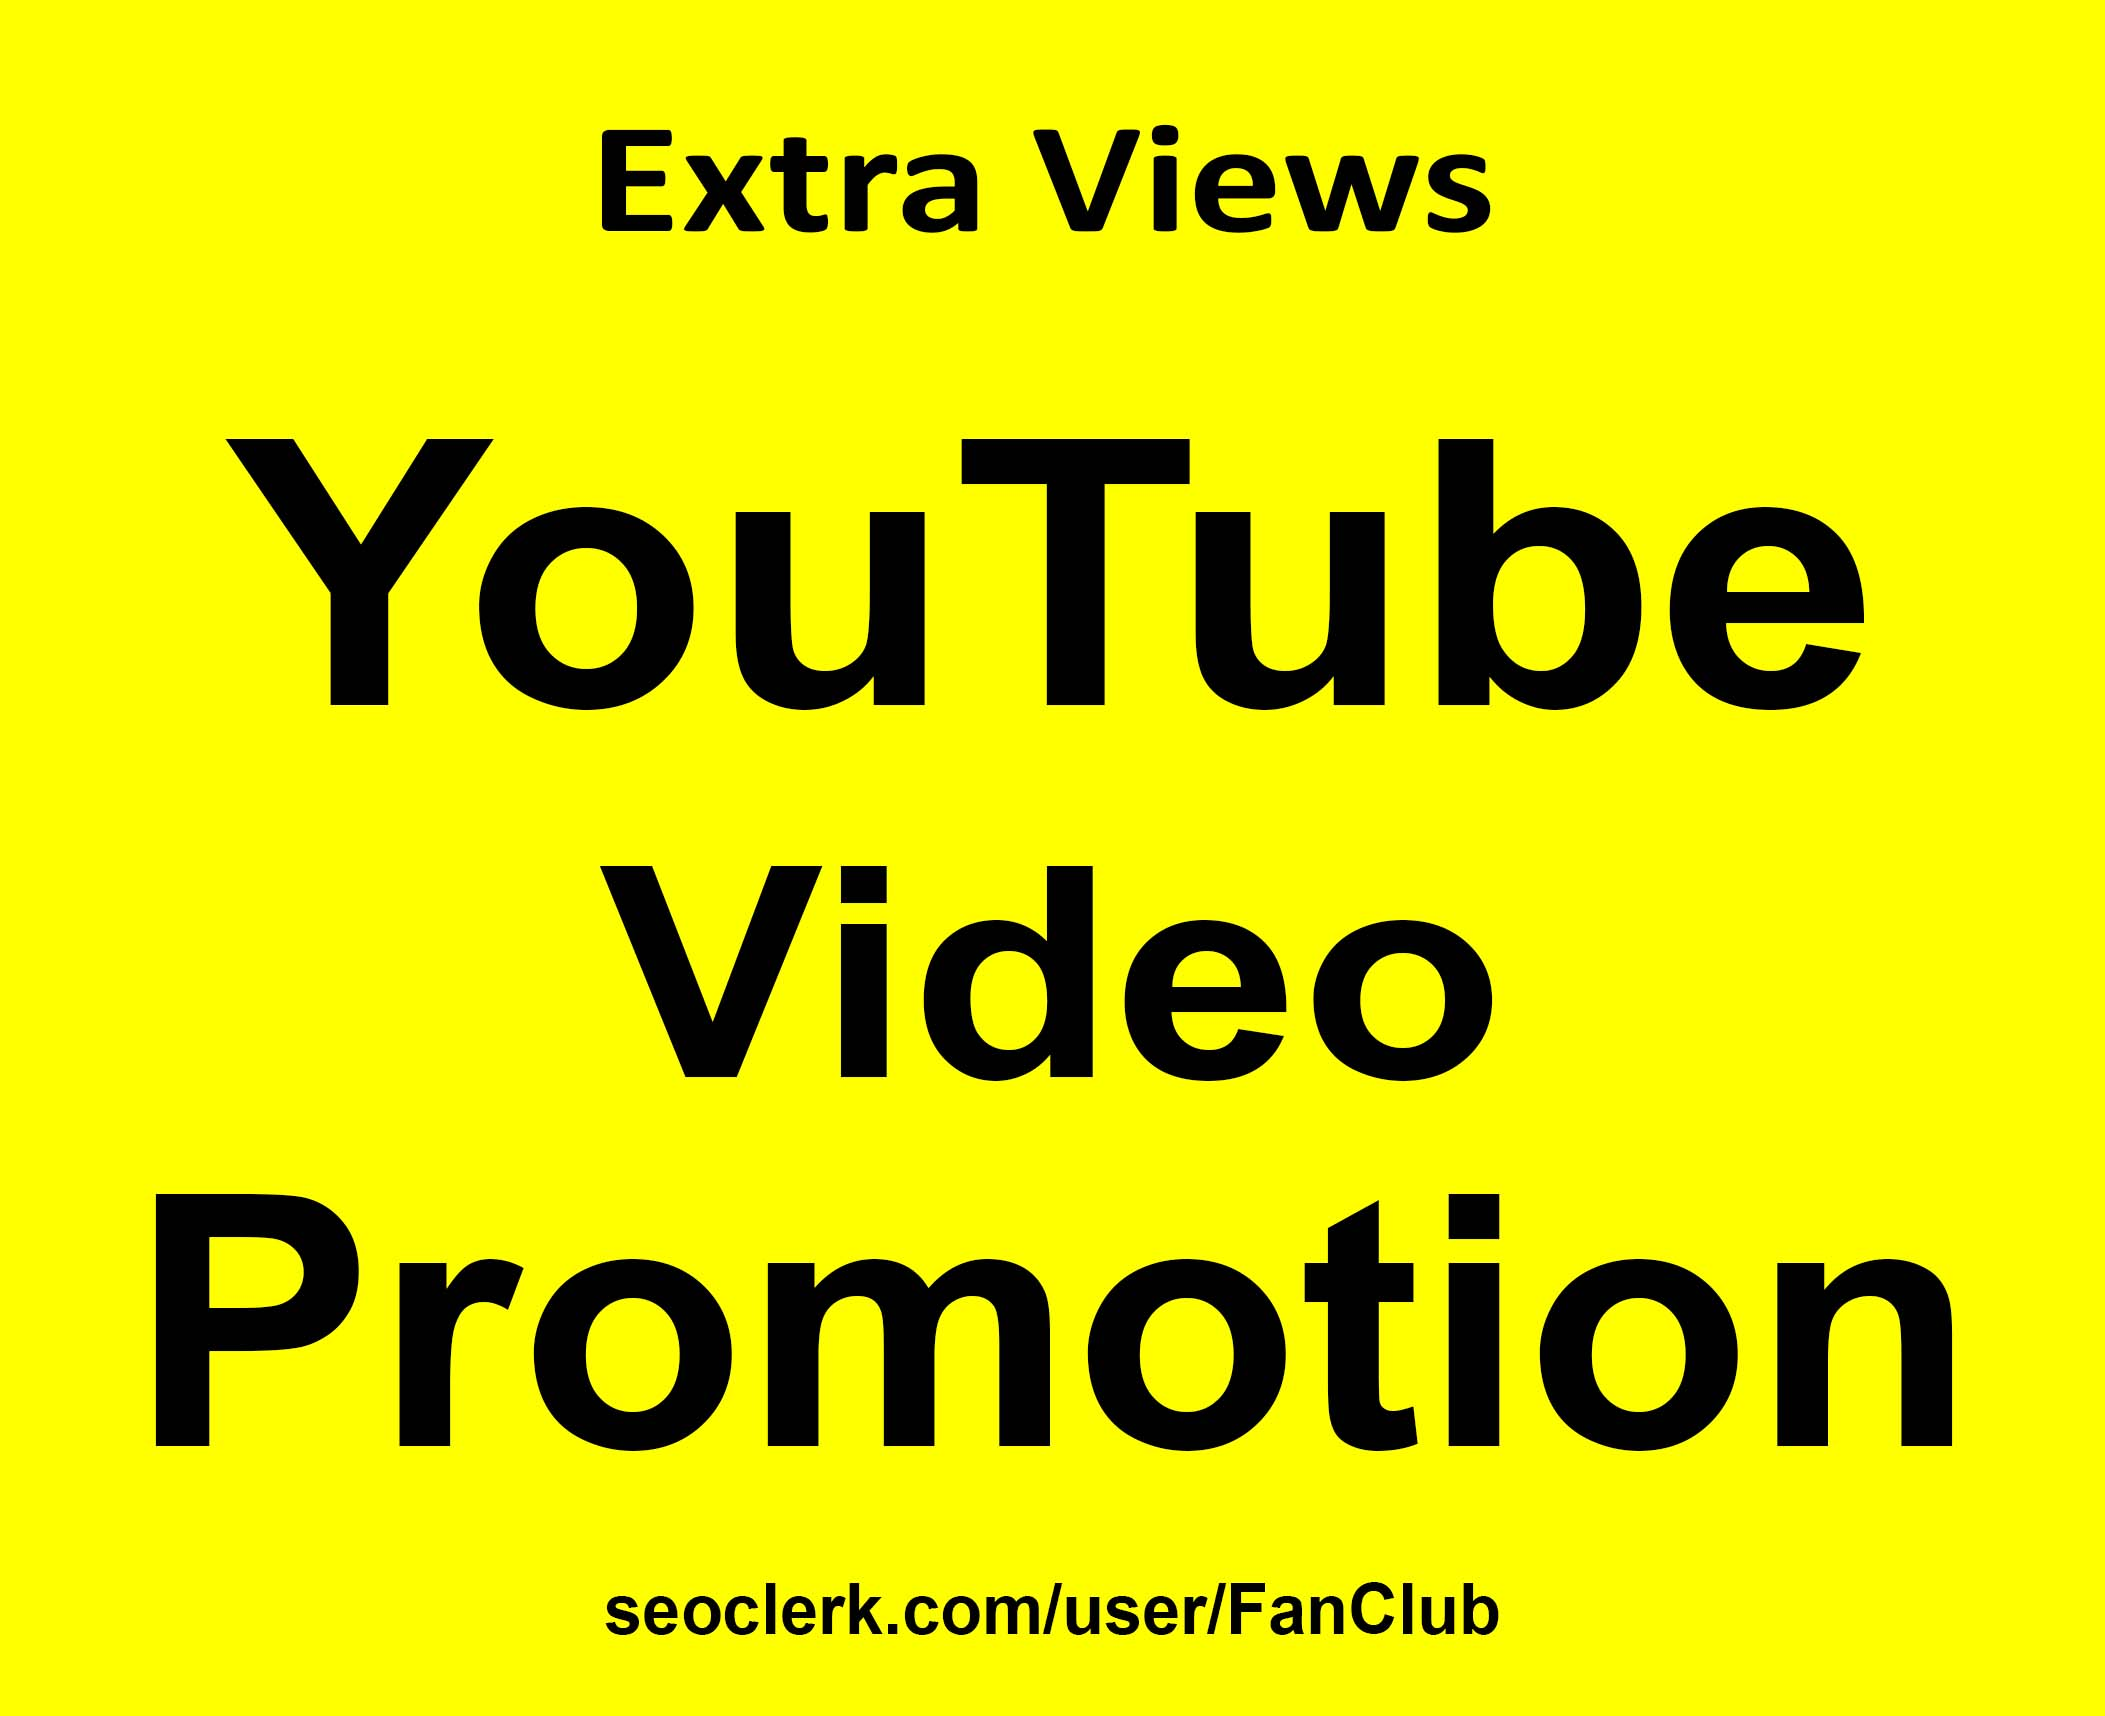 YouTube-Video-HQ-Promotion-Marketing-Good-For-Ranking